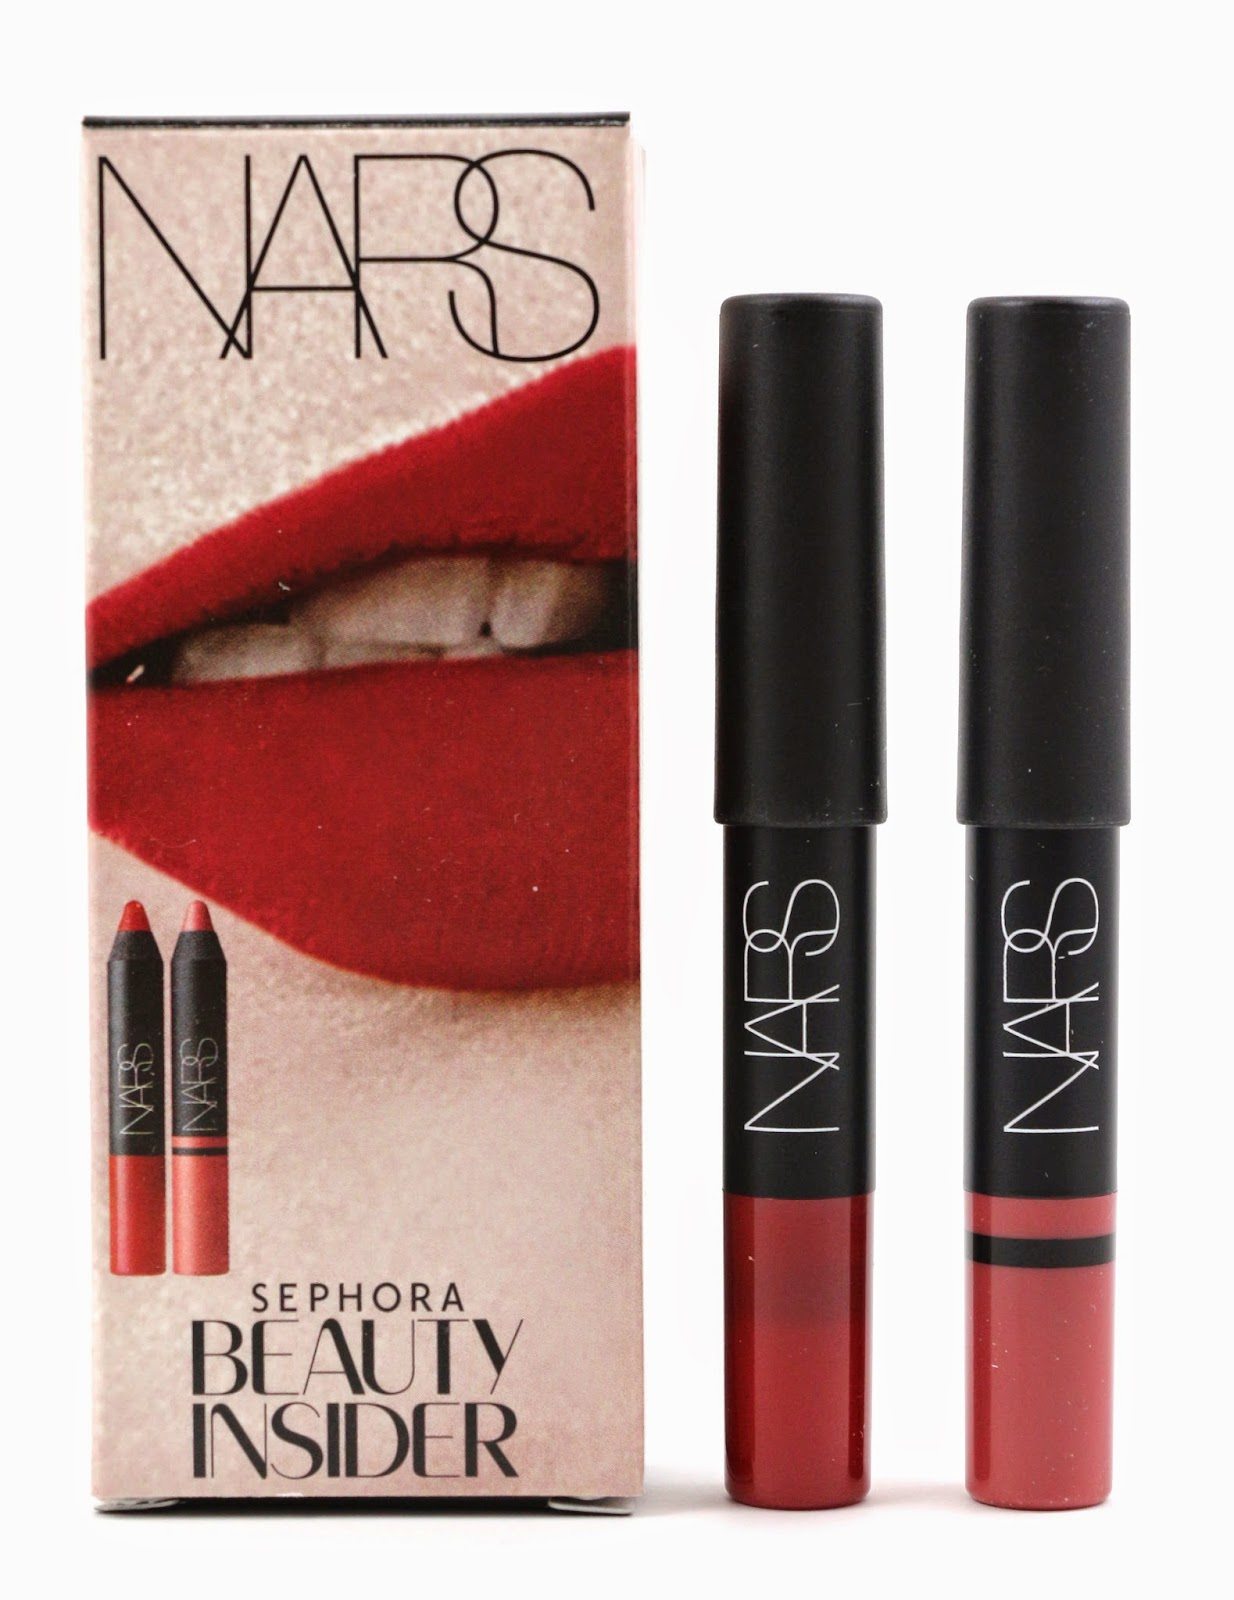 NARS Sephora Beauty Insider Birthday Gift Review